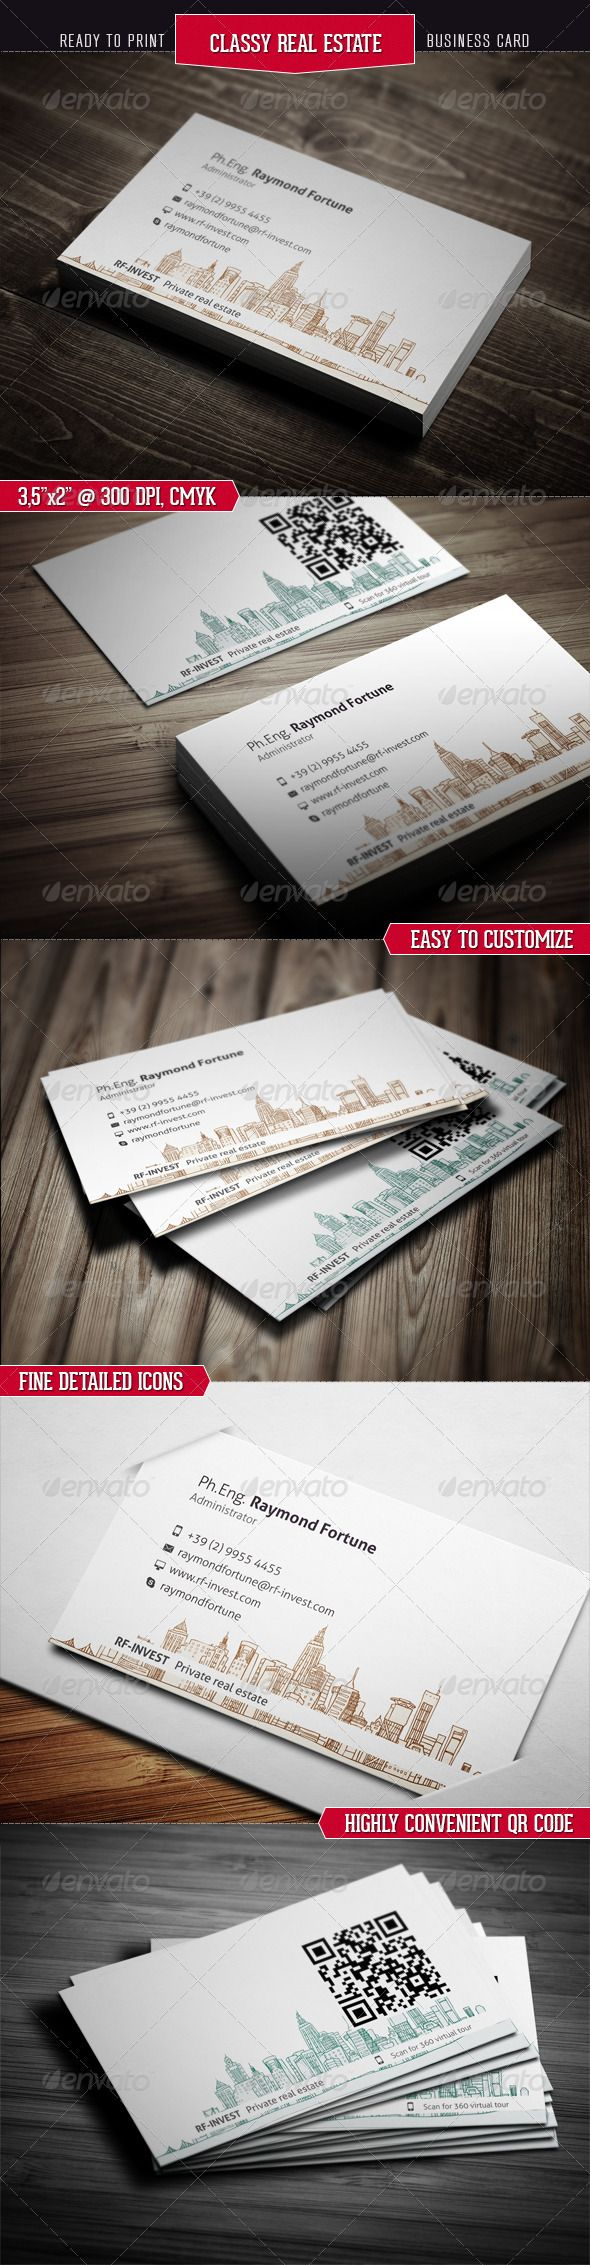 18 best diy classy edgy business cards images on pinterest visit classy real estate business card reheart Choice Image